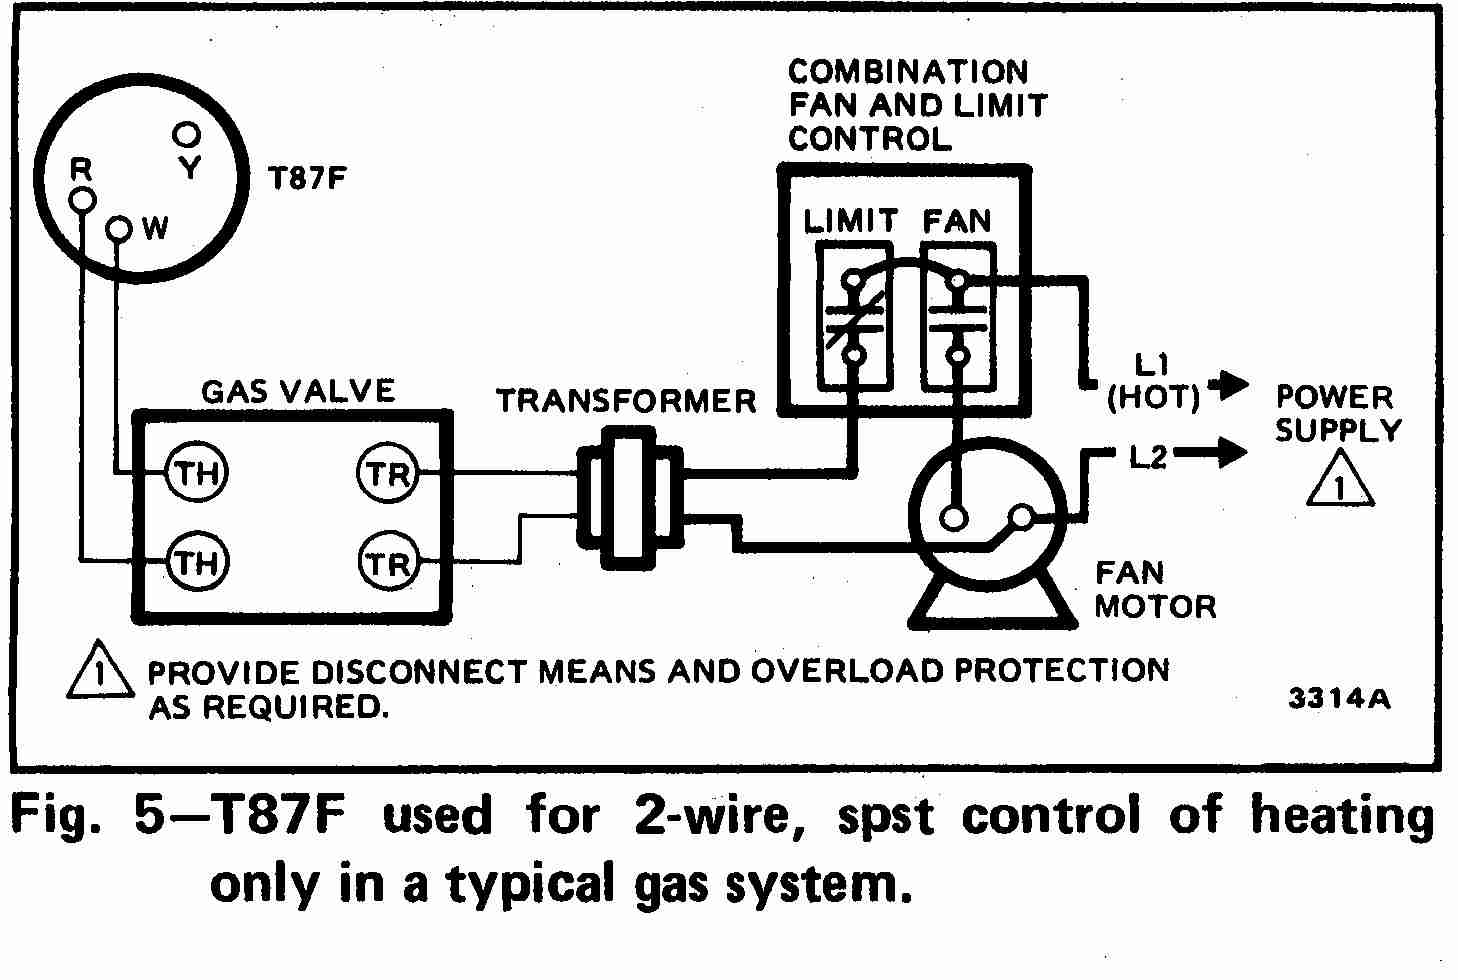 Honeywell T87F Thermostat wiring diagram for 2-wire, spst control of heating only in